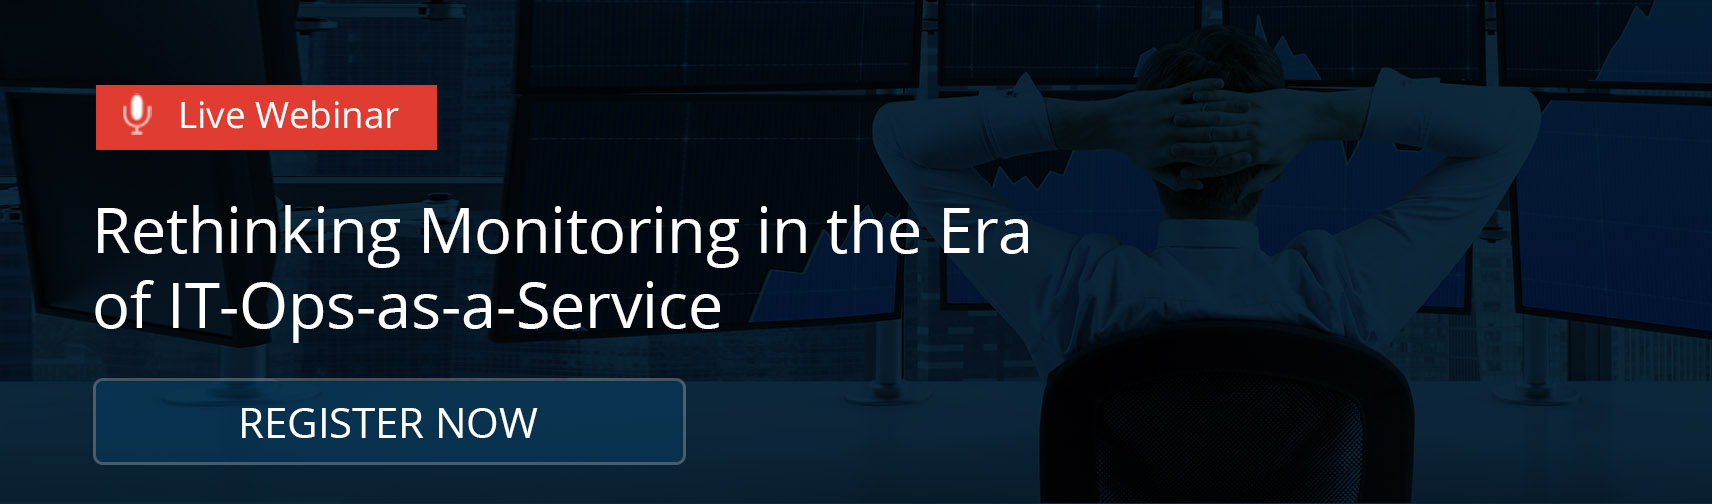 Webinar: Rethinking Monitoring In The Era of IT-Ops-as-a-Service